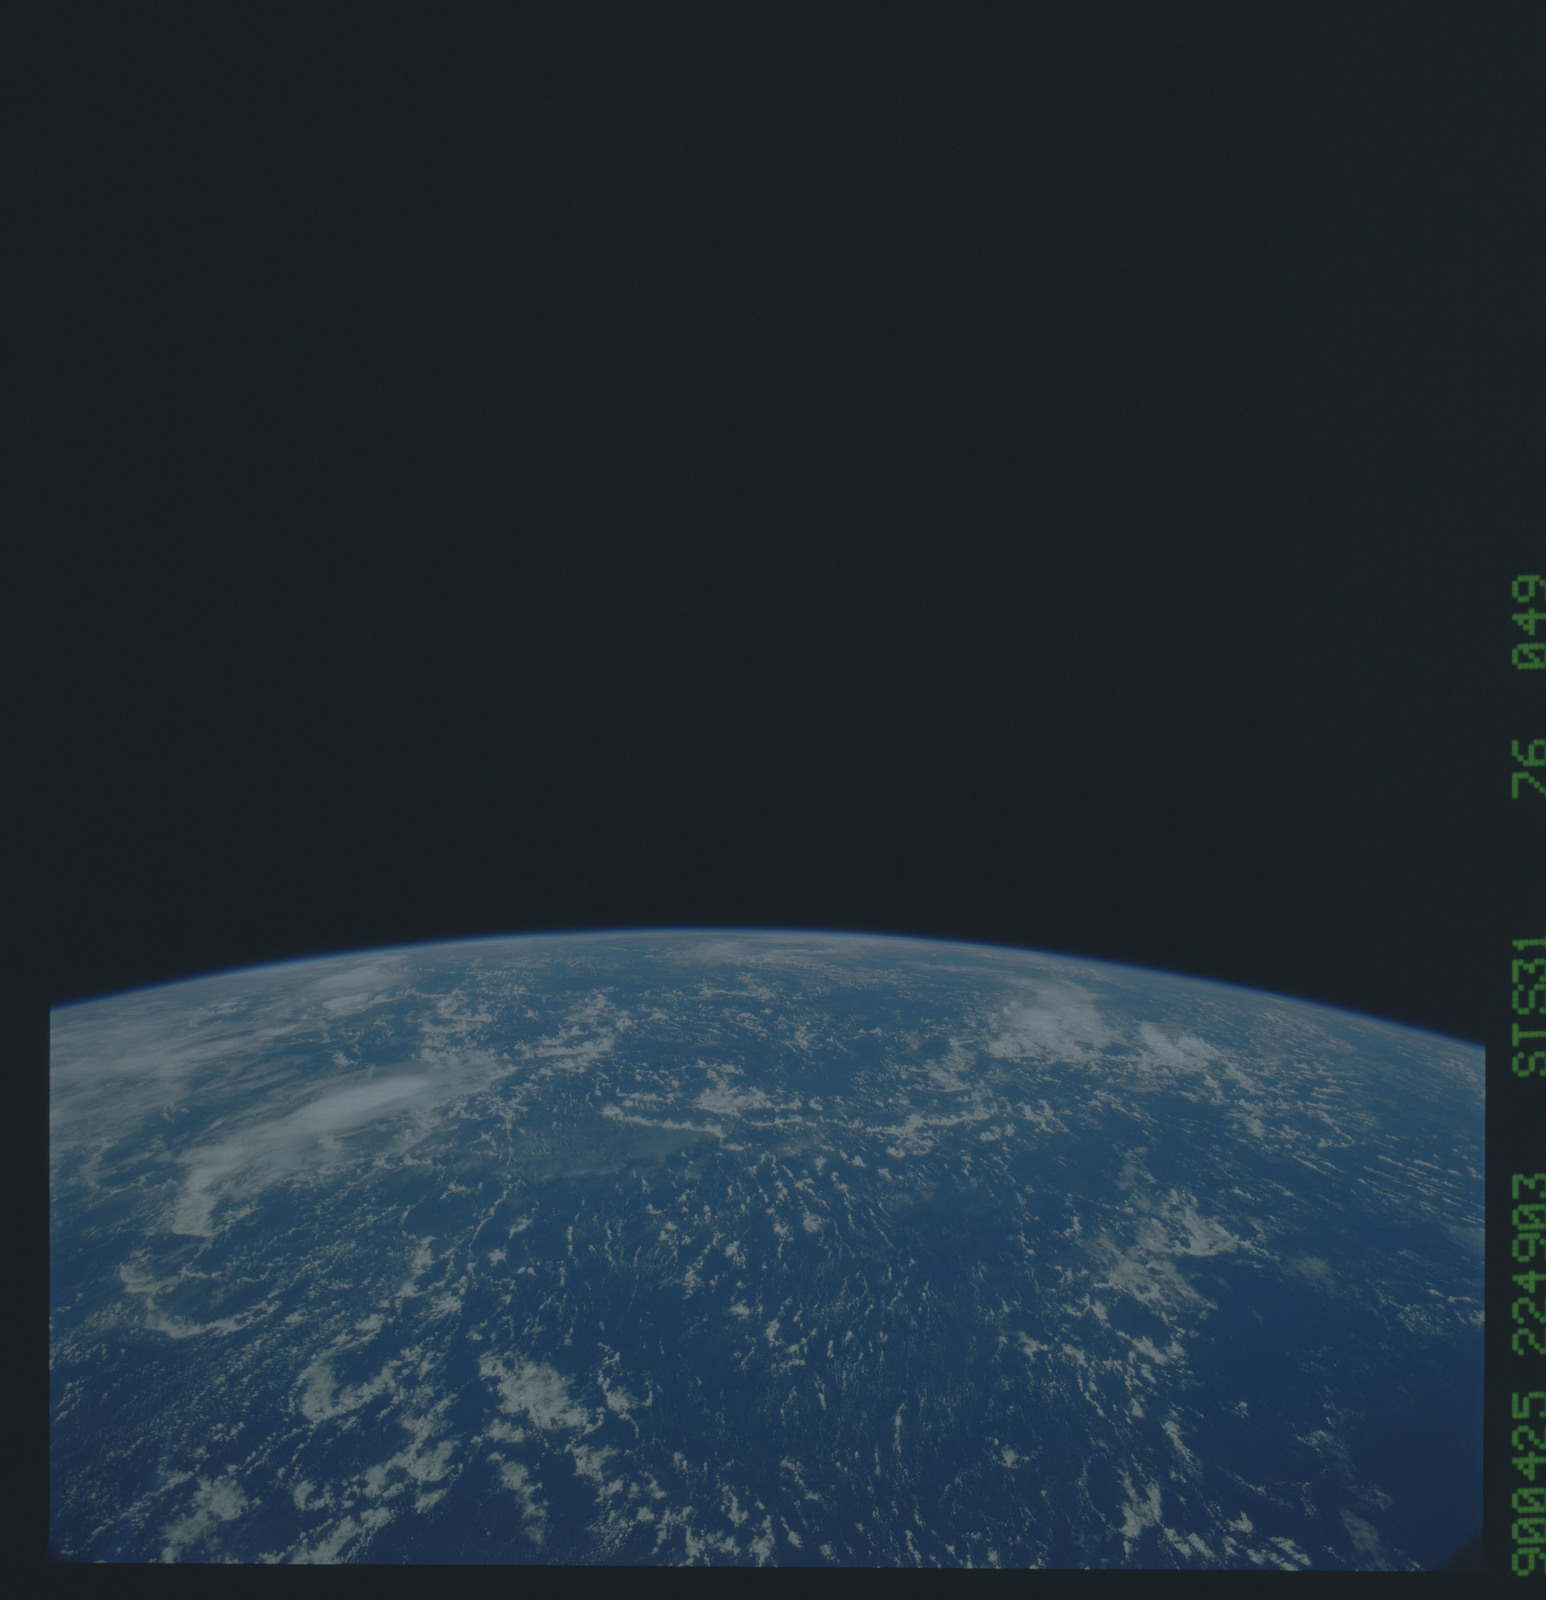 S31-76-049 - STS-031 - STS-31 earth observations